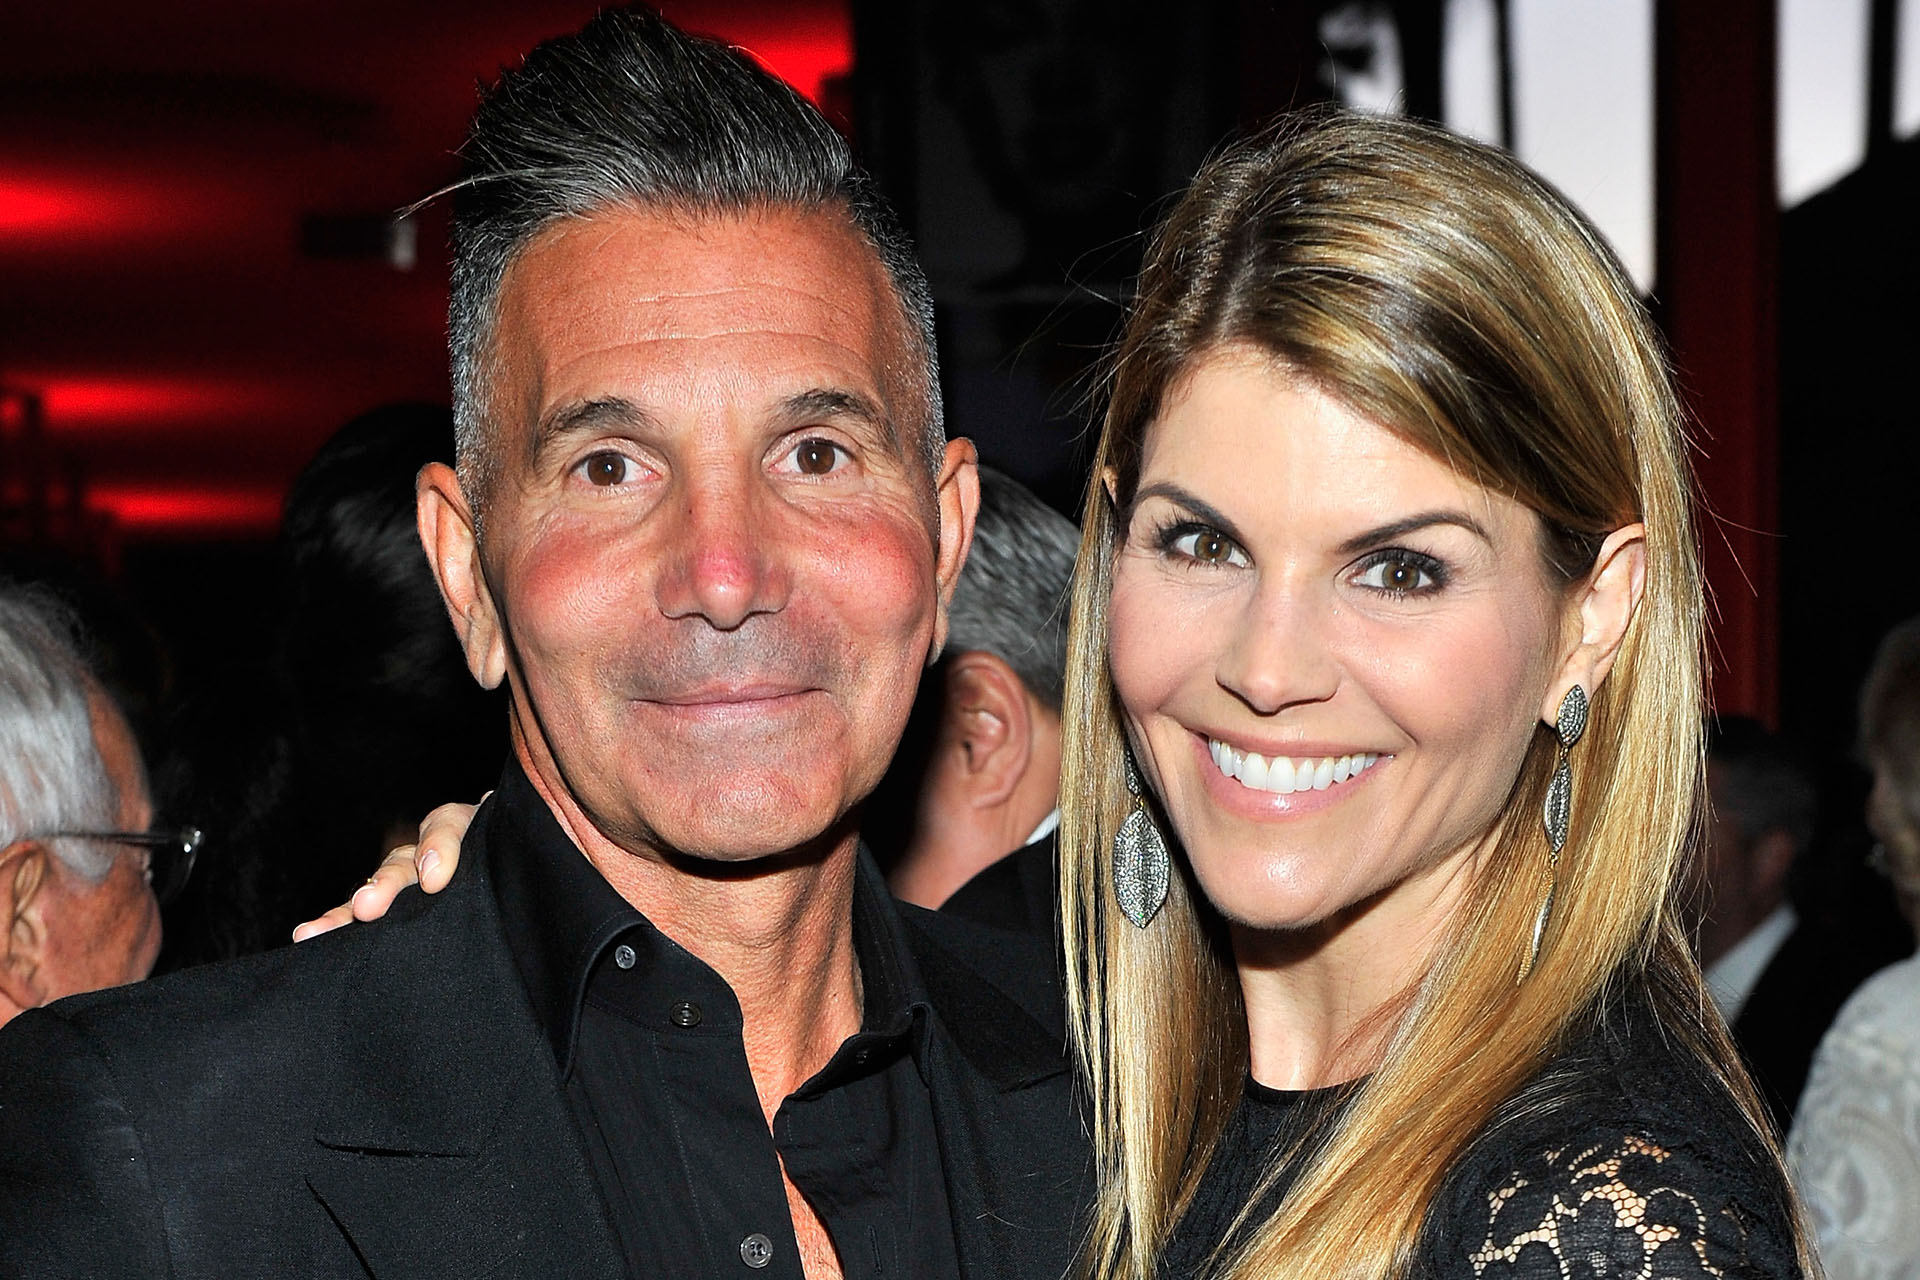 People Now: All the Details About Lori Loughlin's Husband Mossimo Giannulli's 5 Month Prison Sentence - Watch the Full Episode